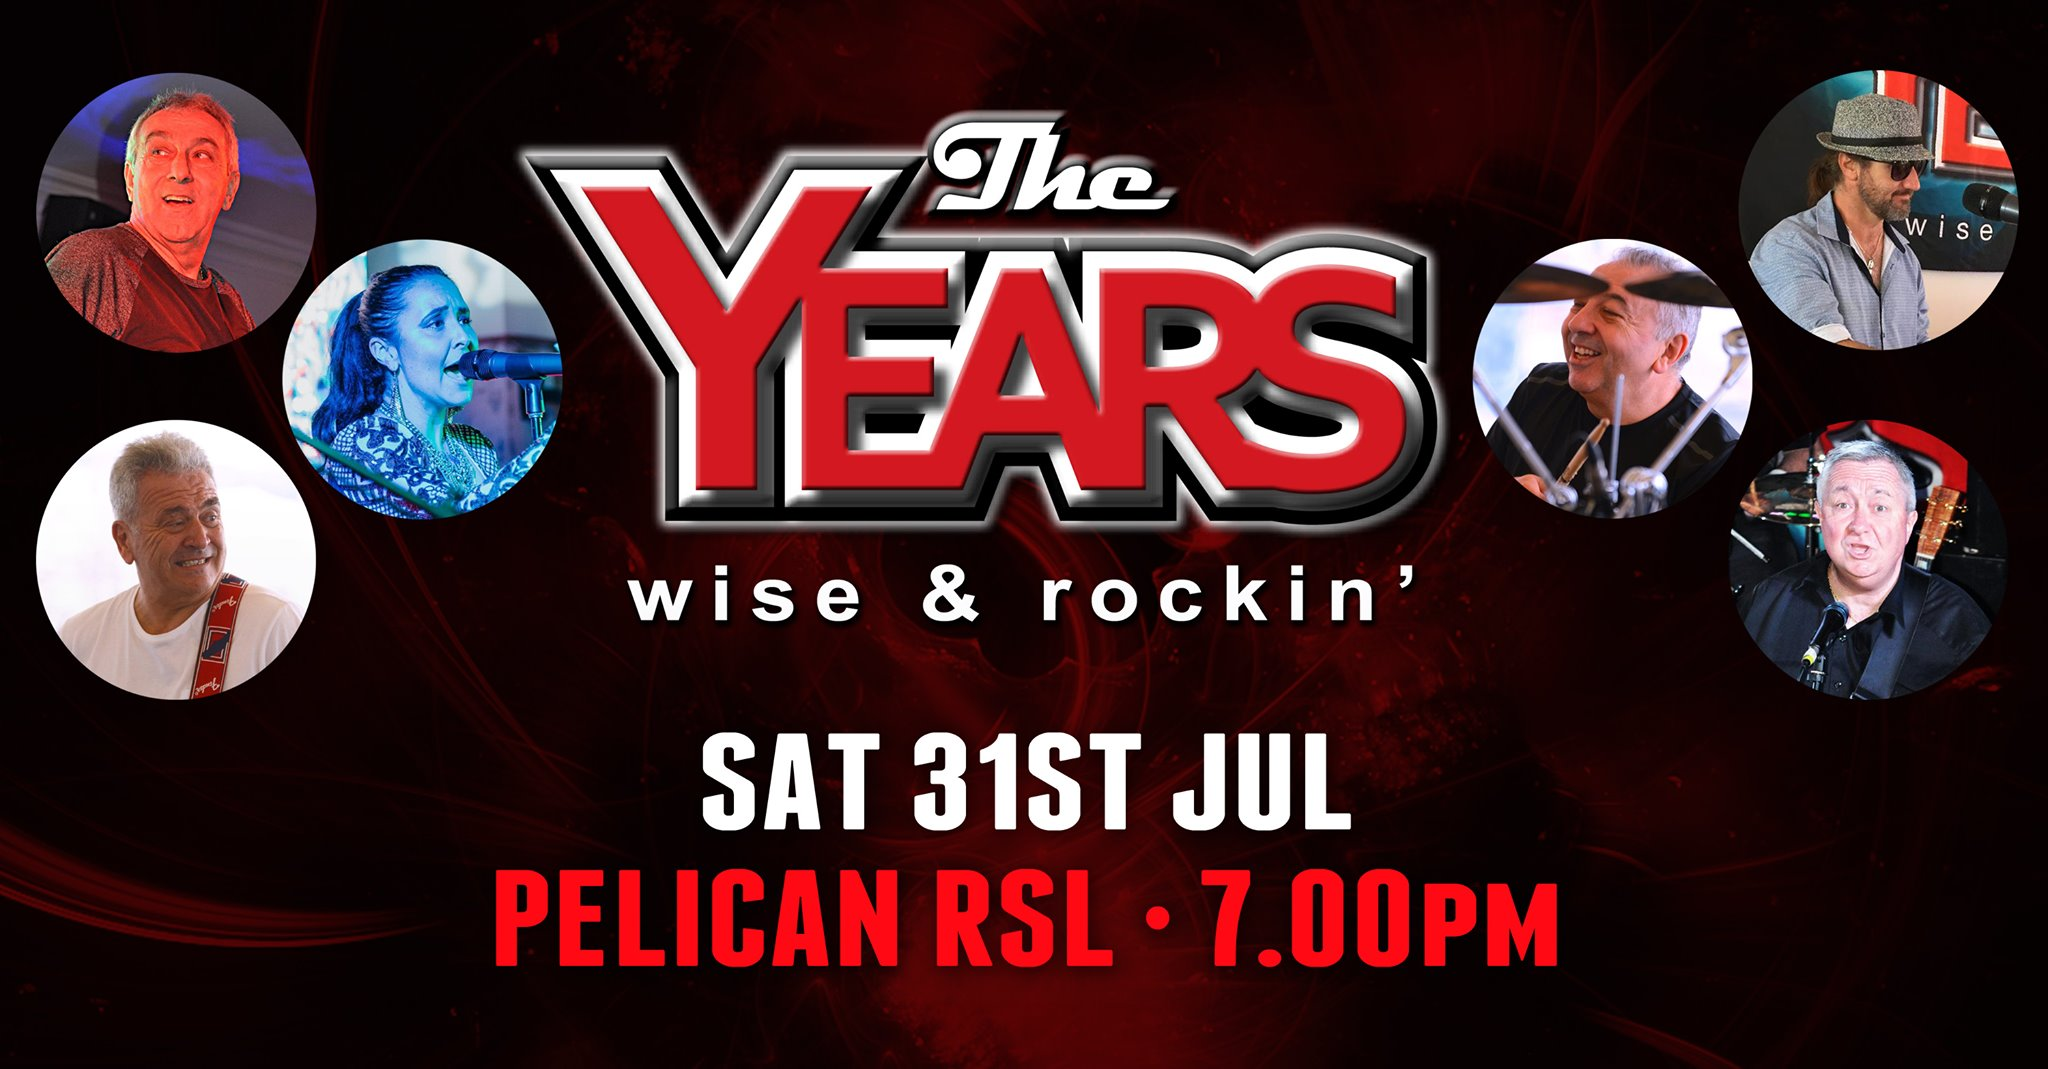 The Years at Pelican RSL